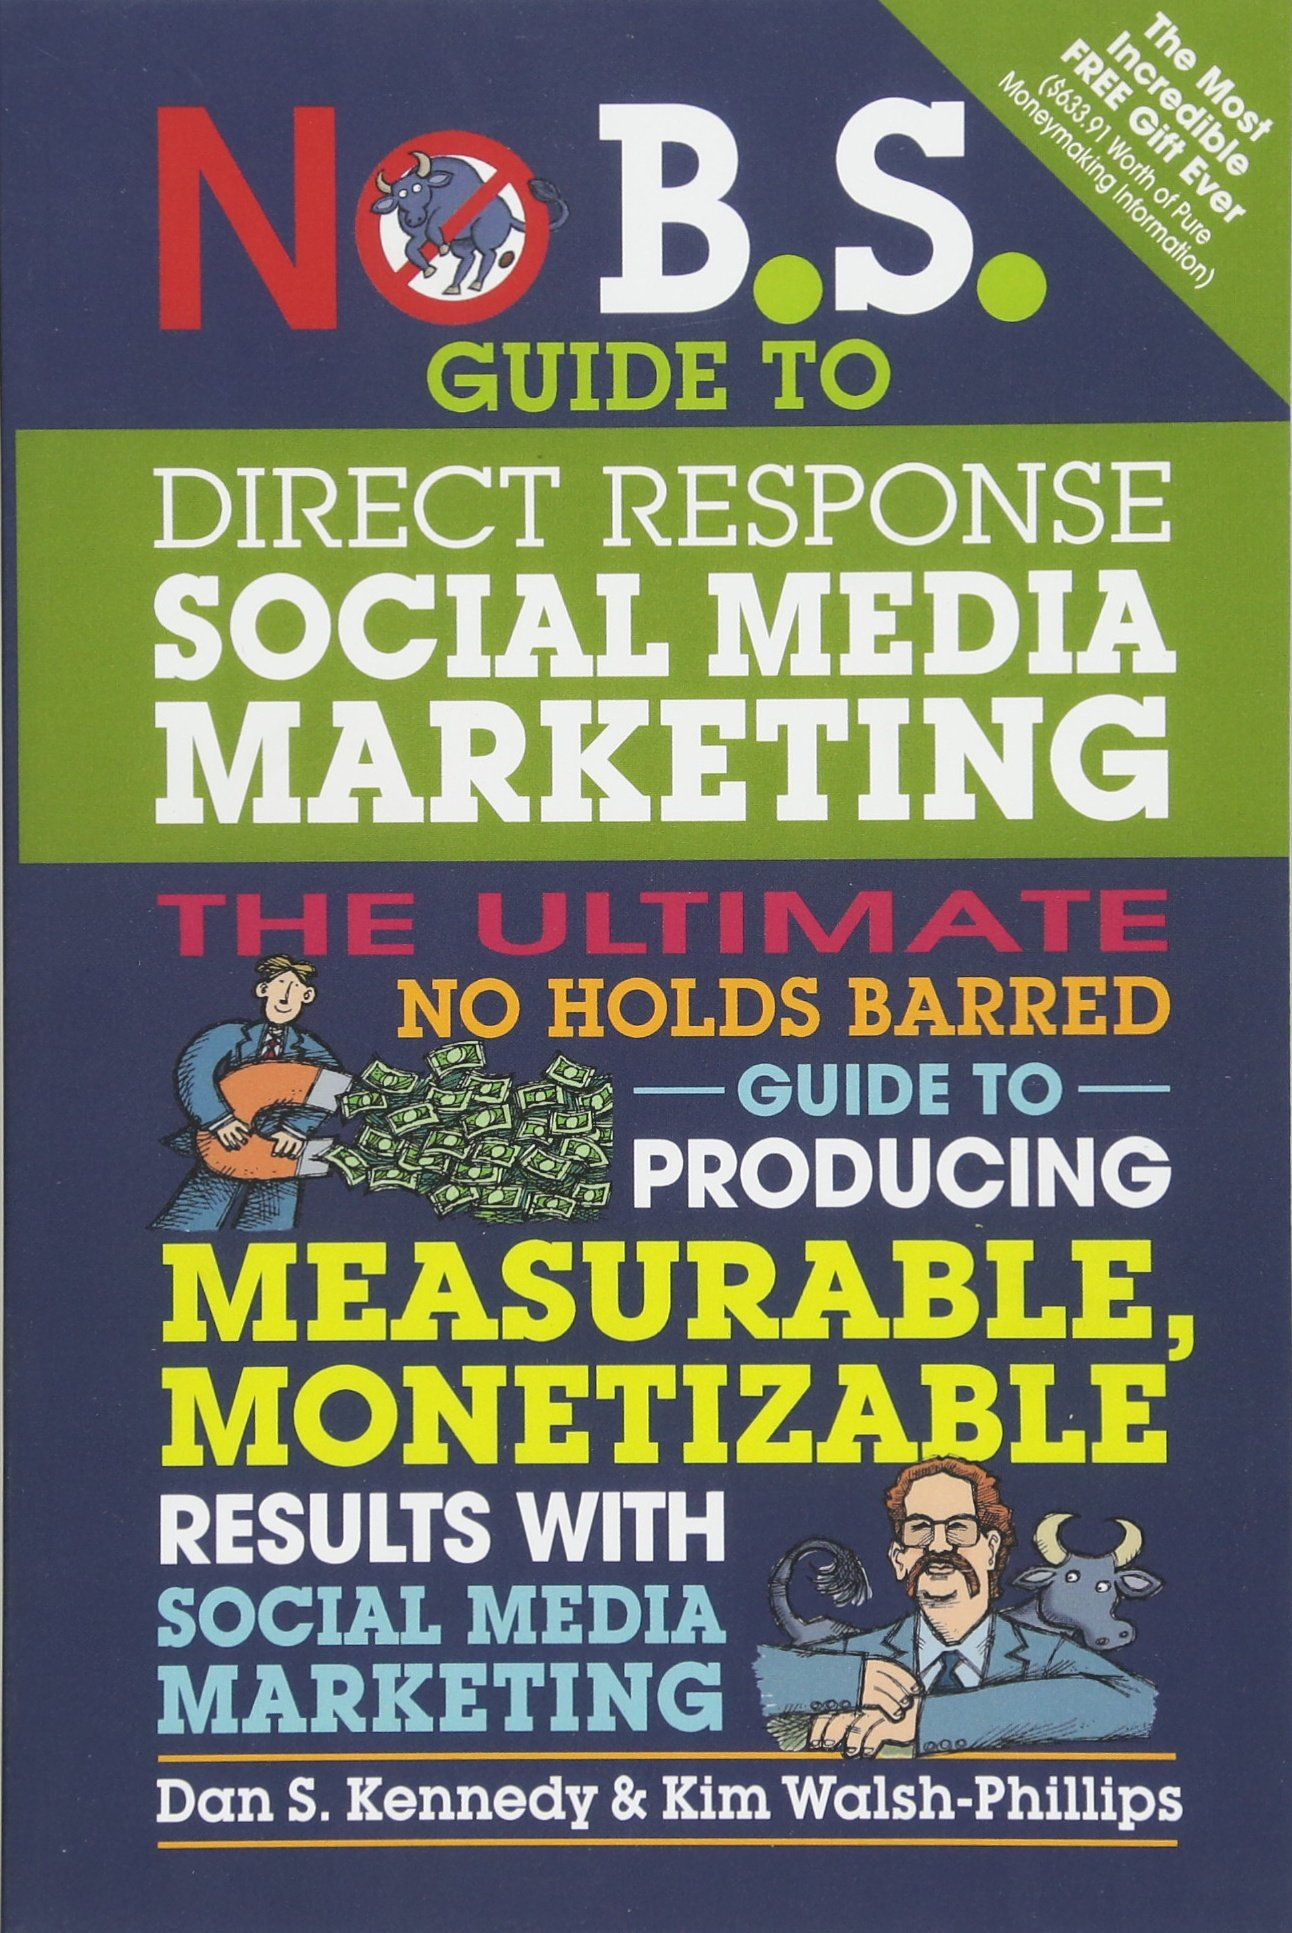 No B S  Guide to Direct Response Social Media Marketing: The